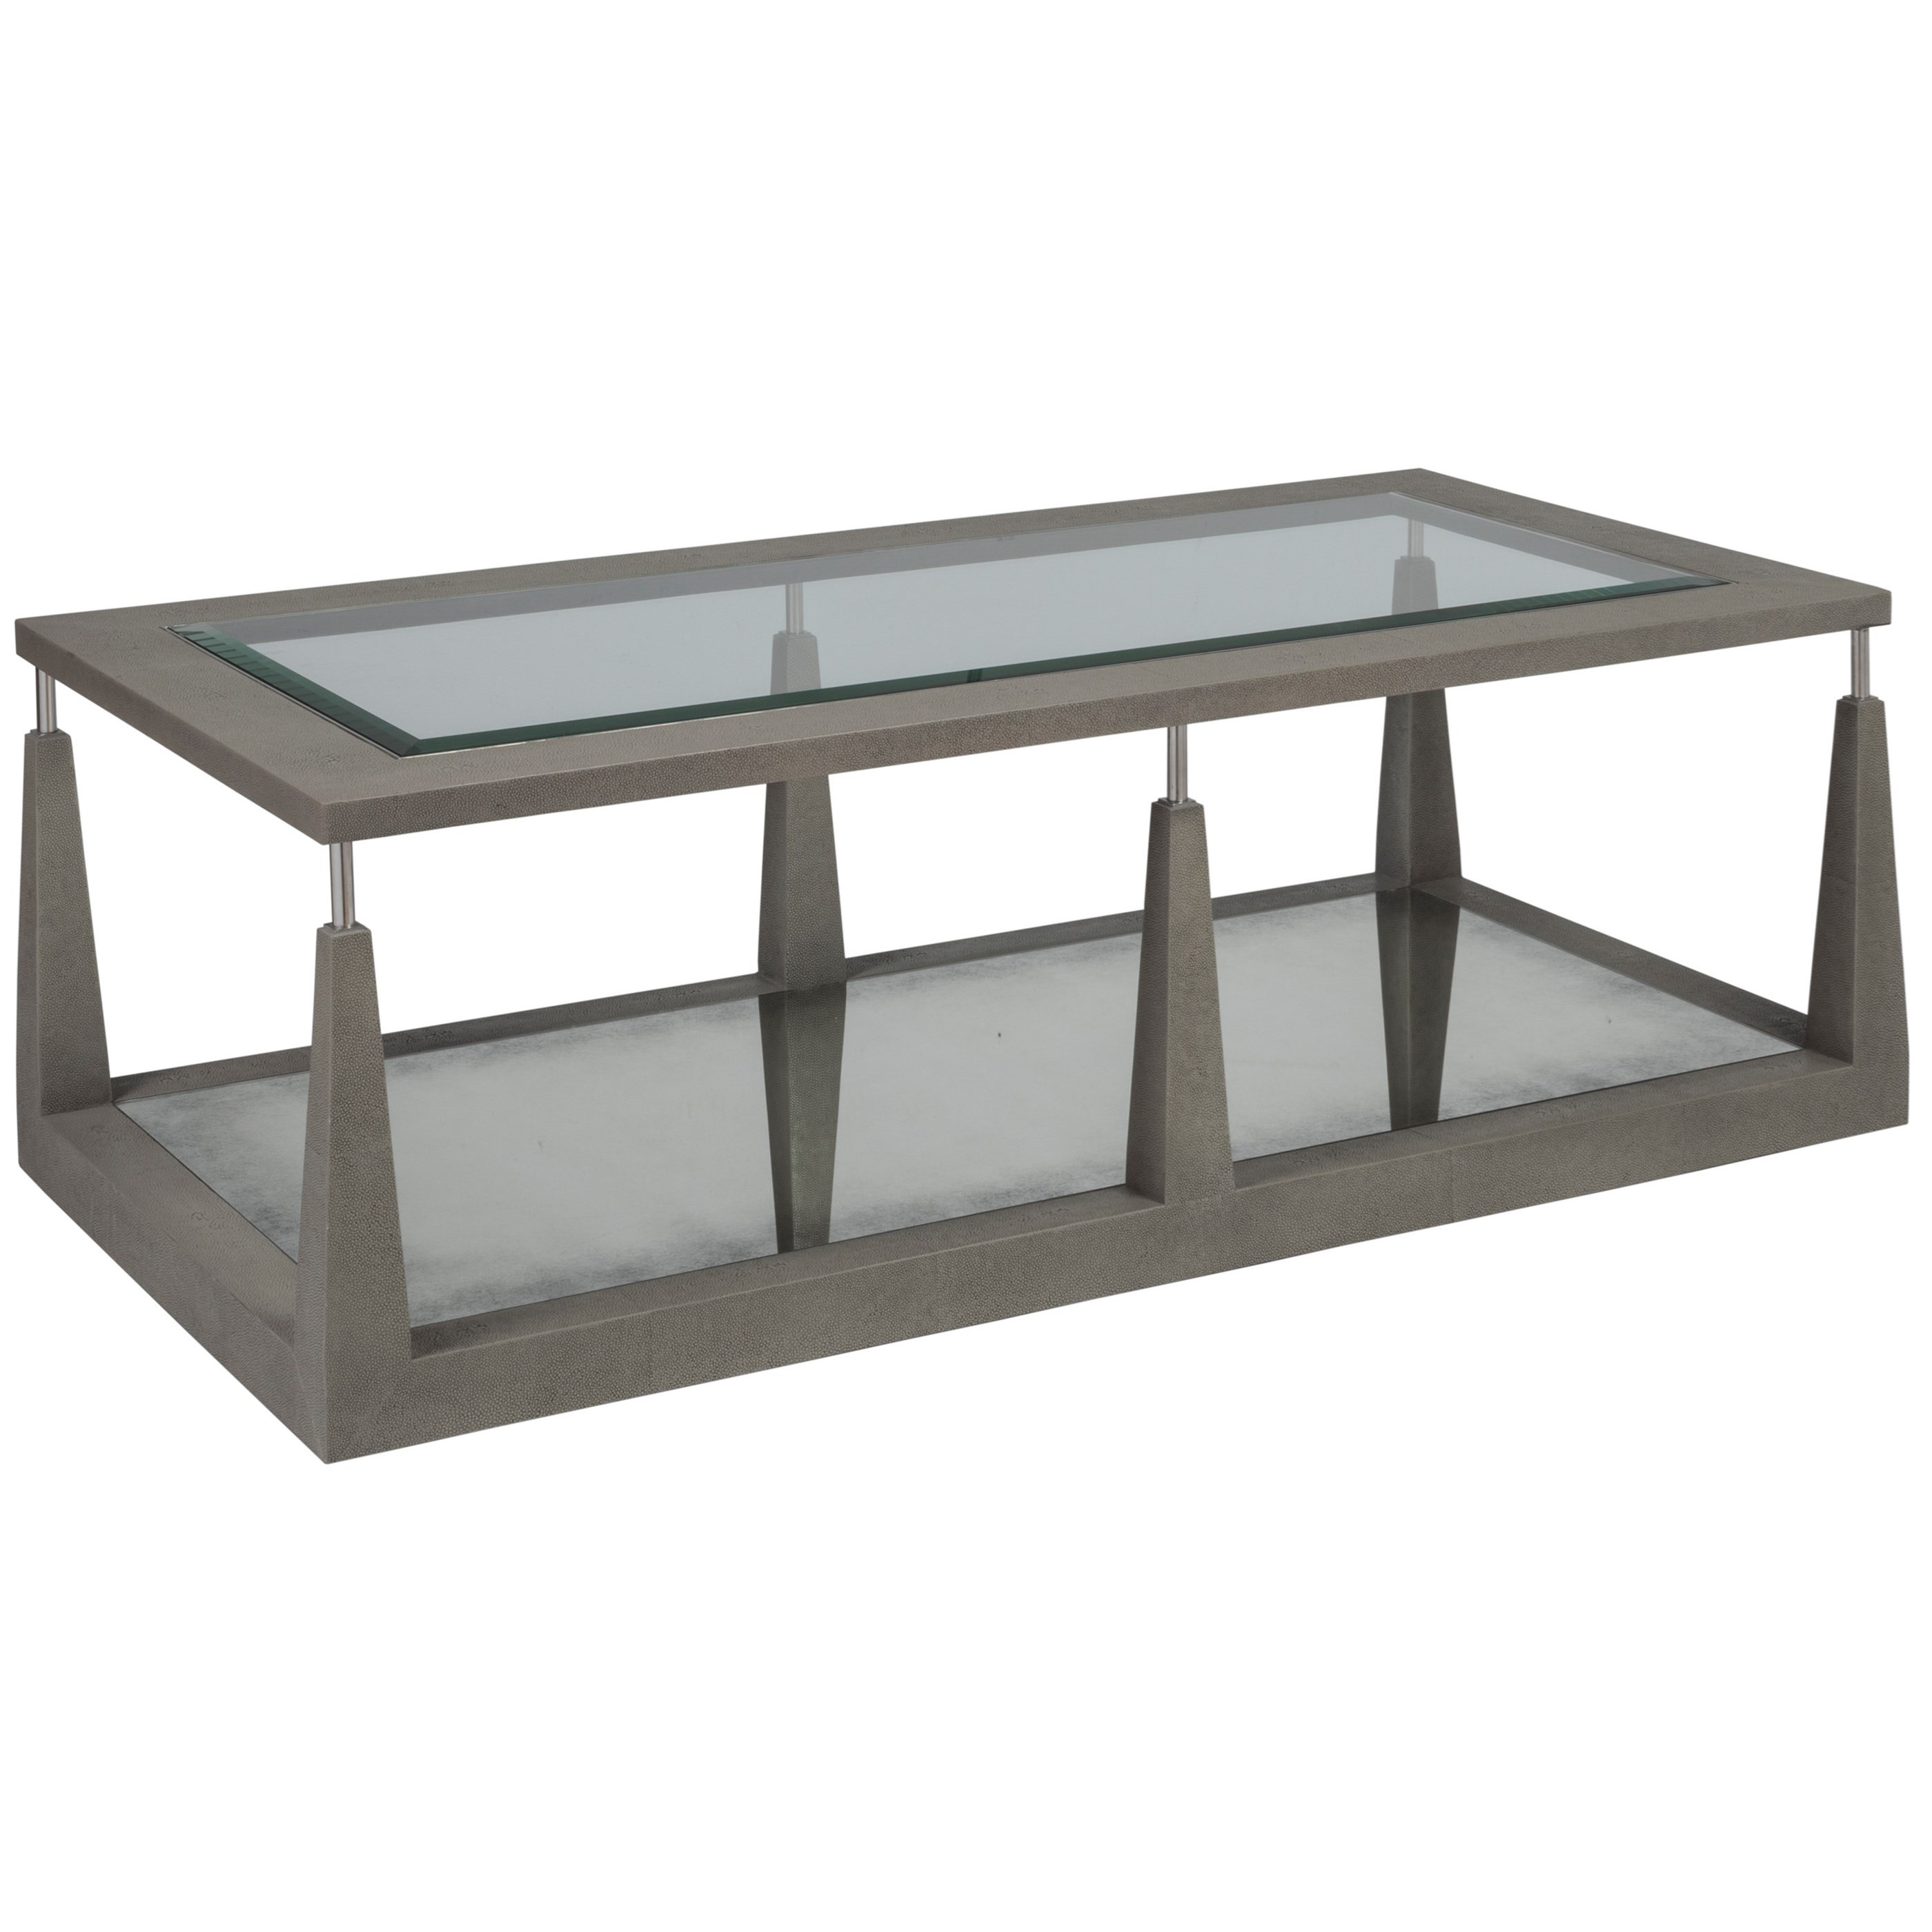 Ascension Rectangular Cocktail Table by Artistica at Alison Craig Home Furnishings